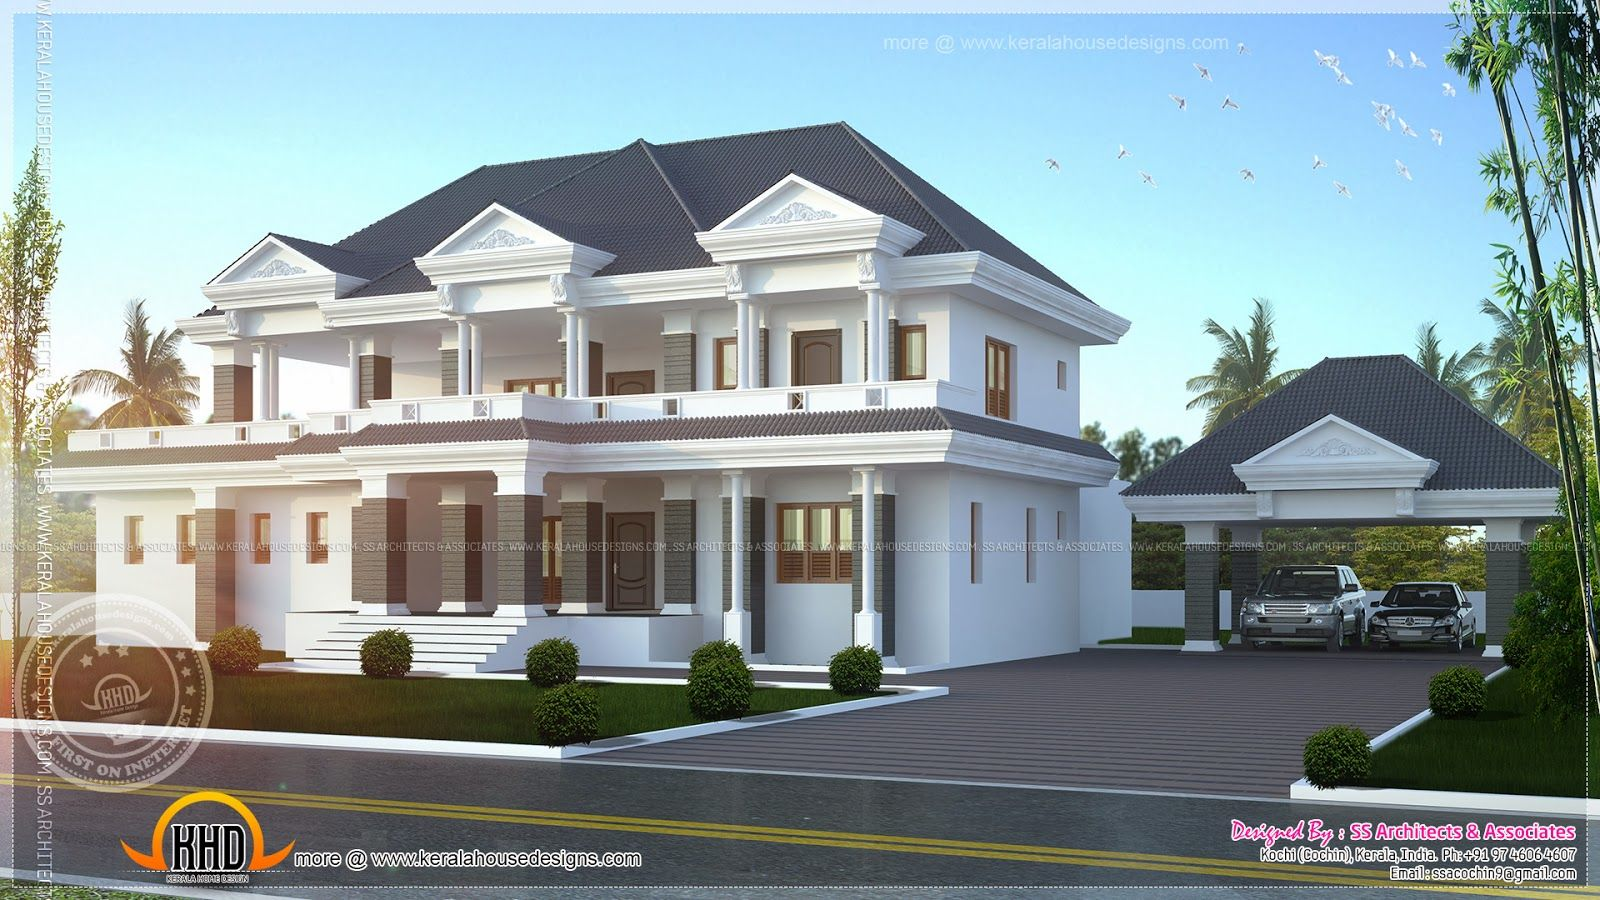 Luxury house plans posh luxury home plan audisb luxury for Modern luxury home design